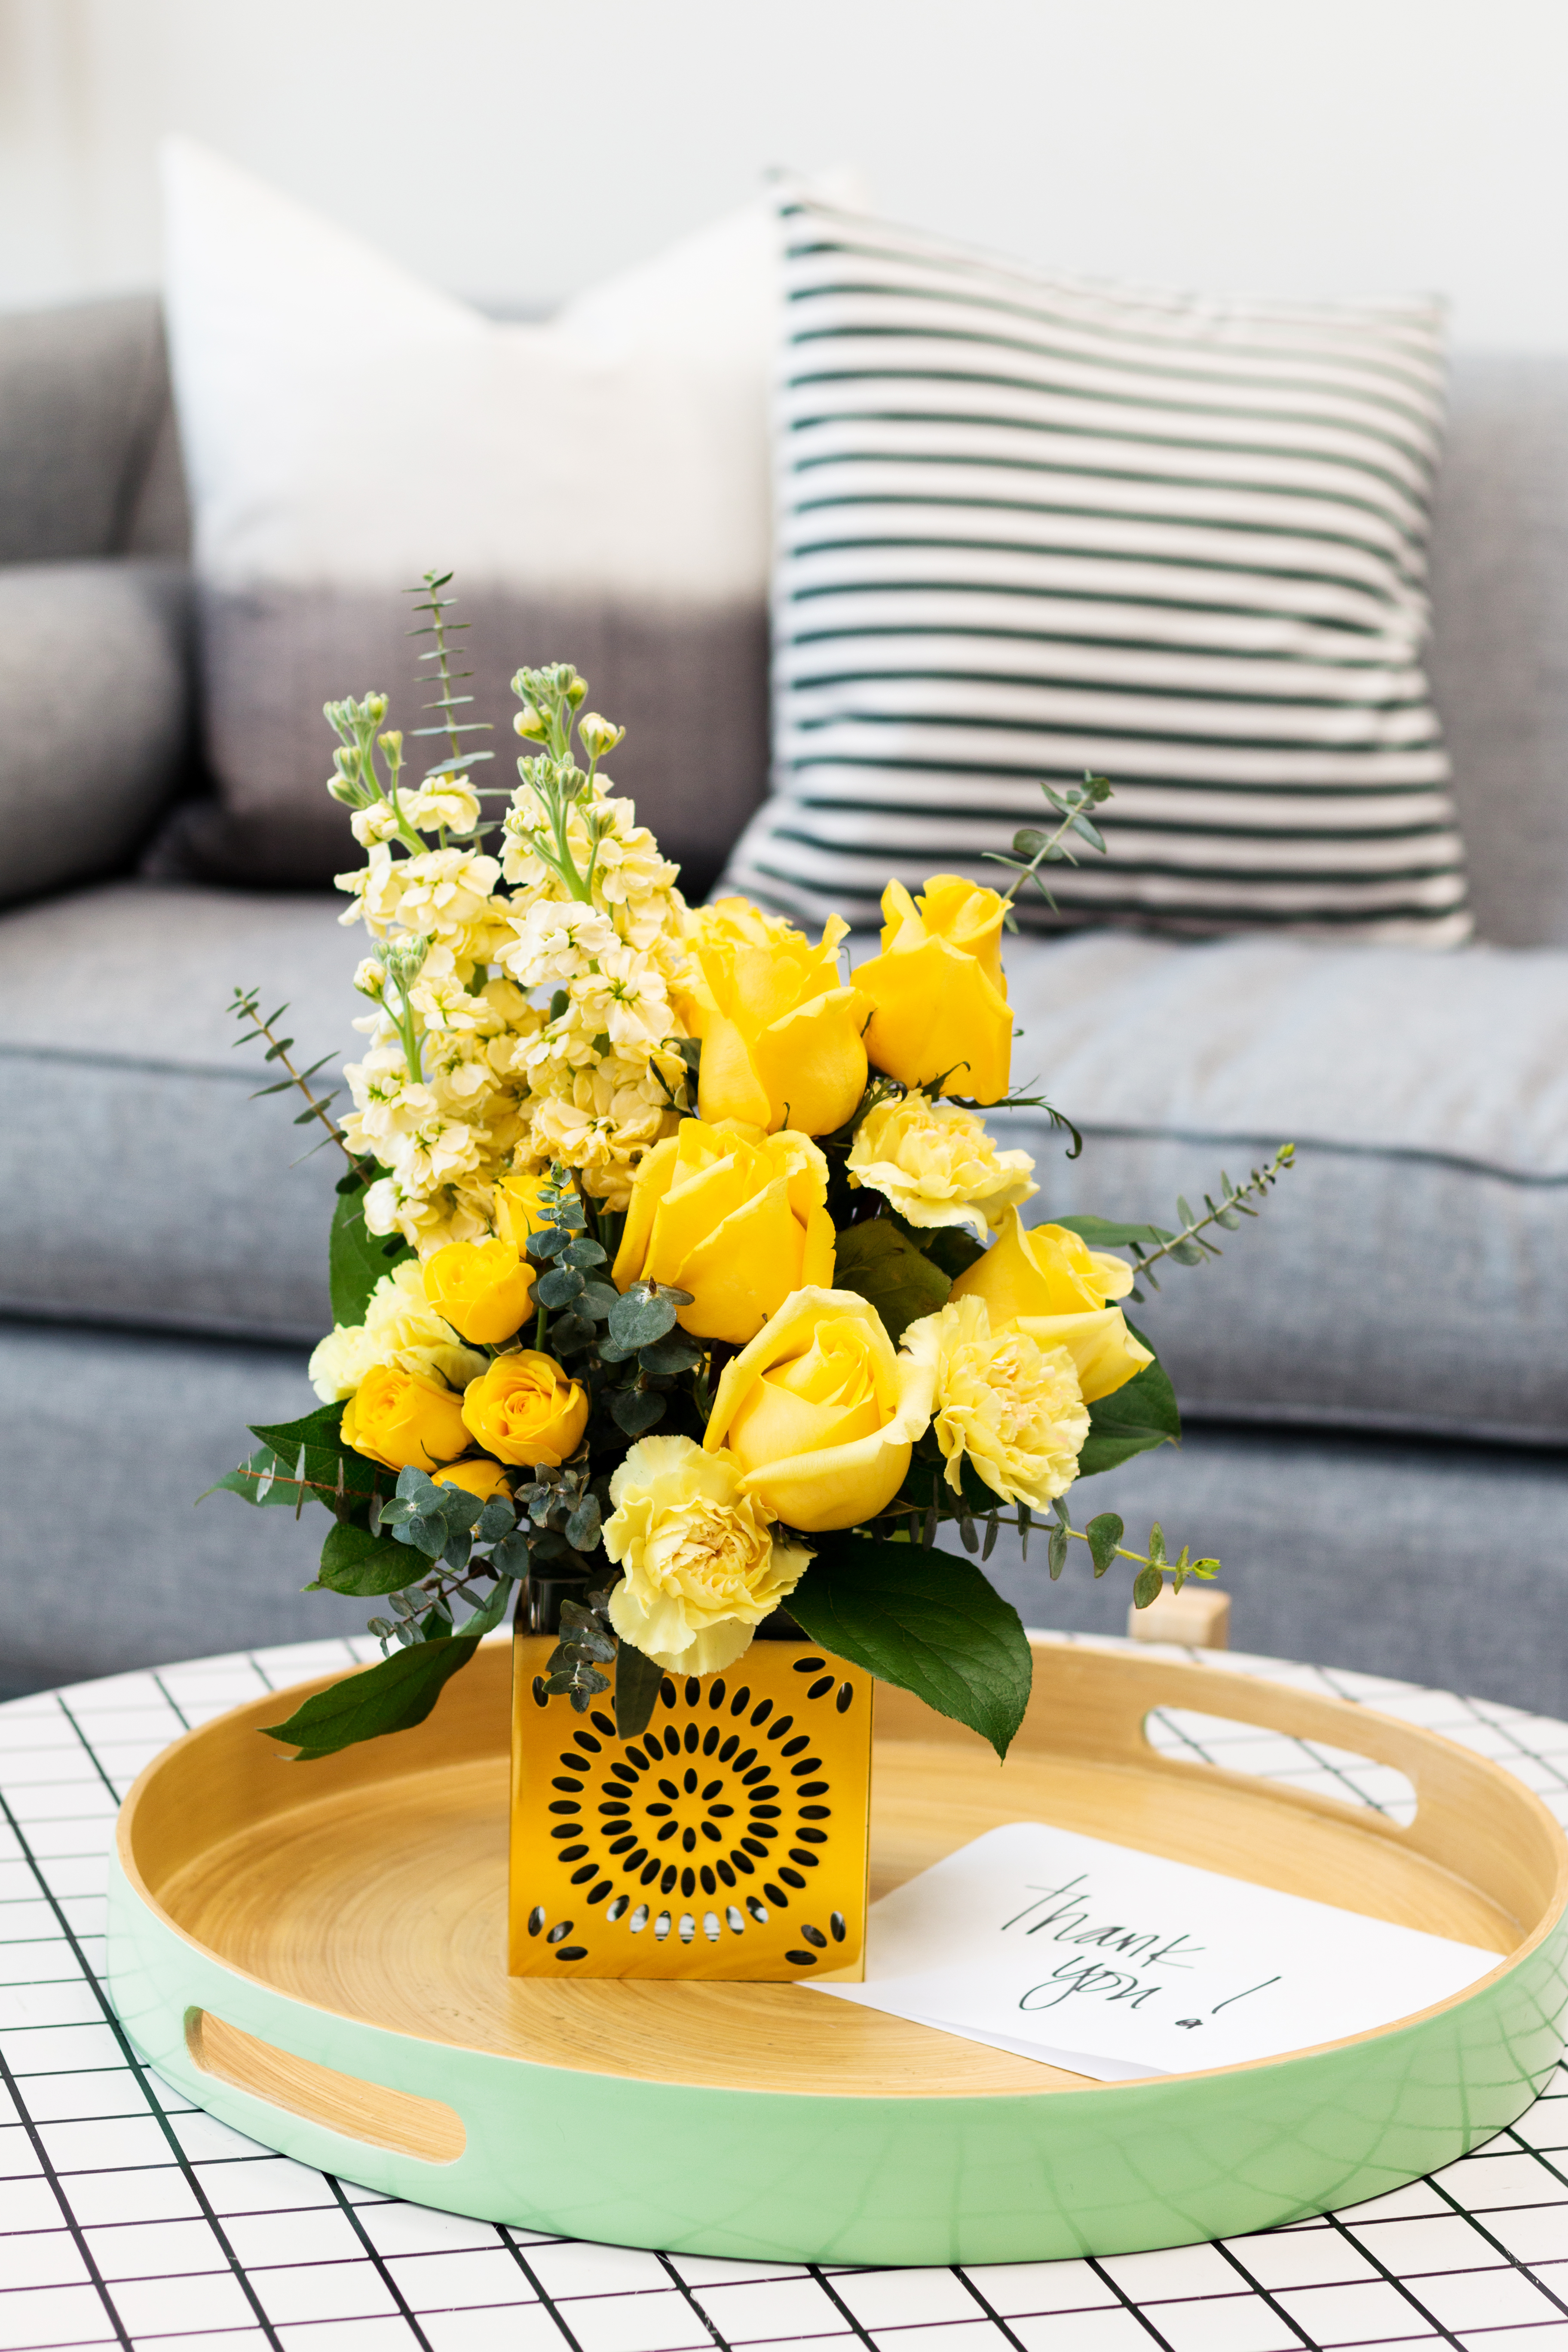 yellow roses and carnations fill a gold cube vase on a table with thank you card